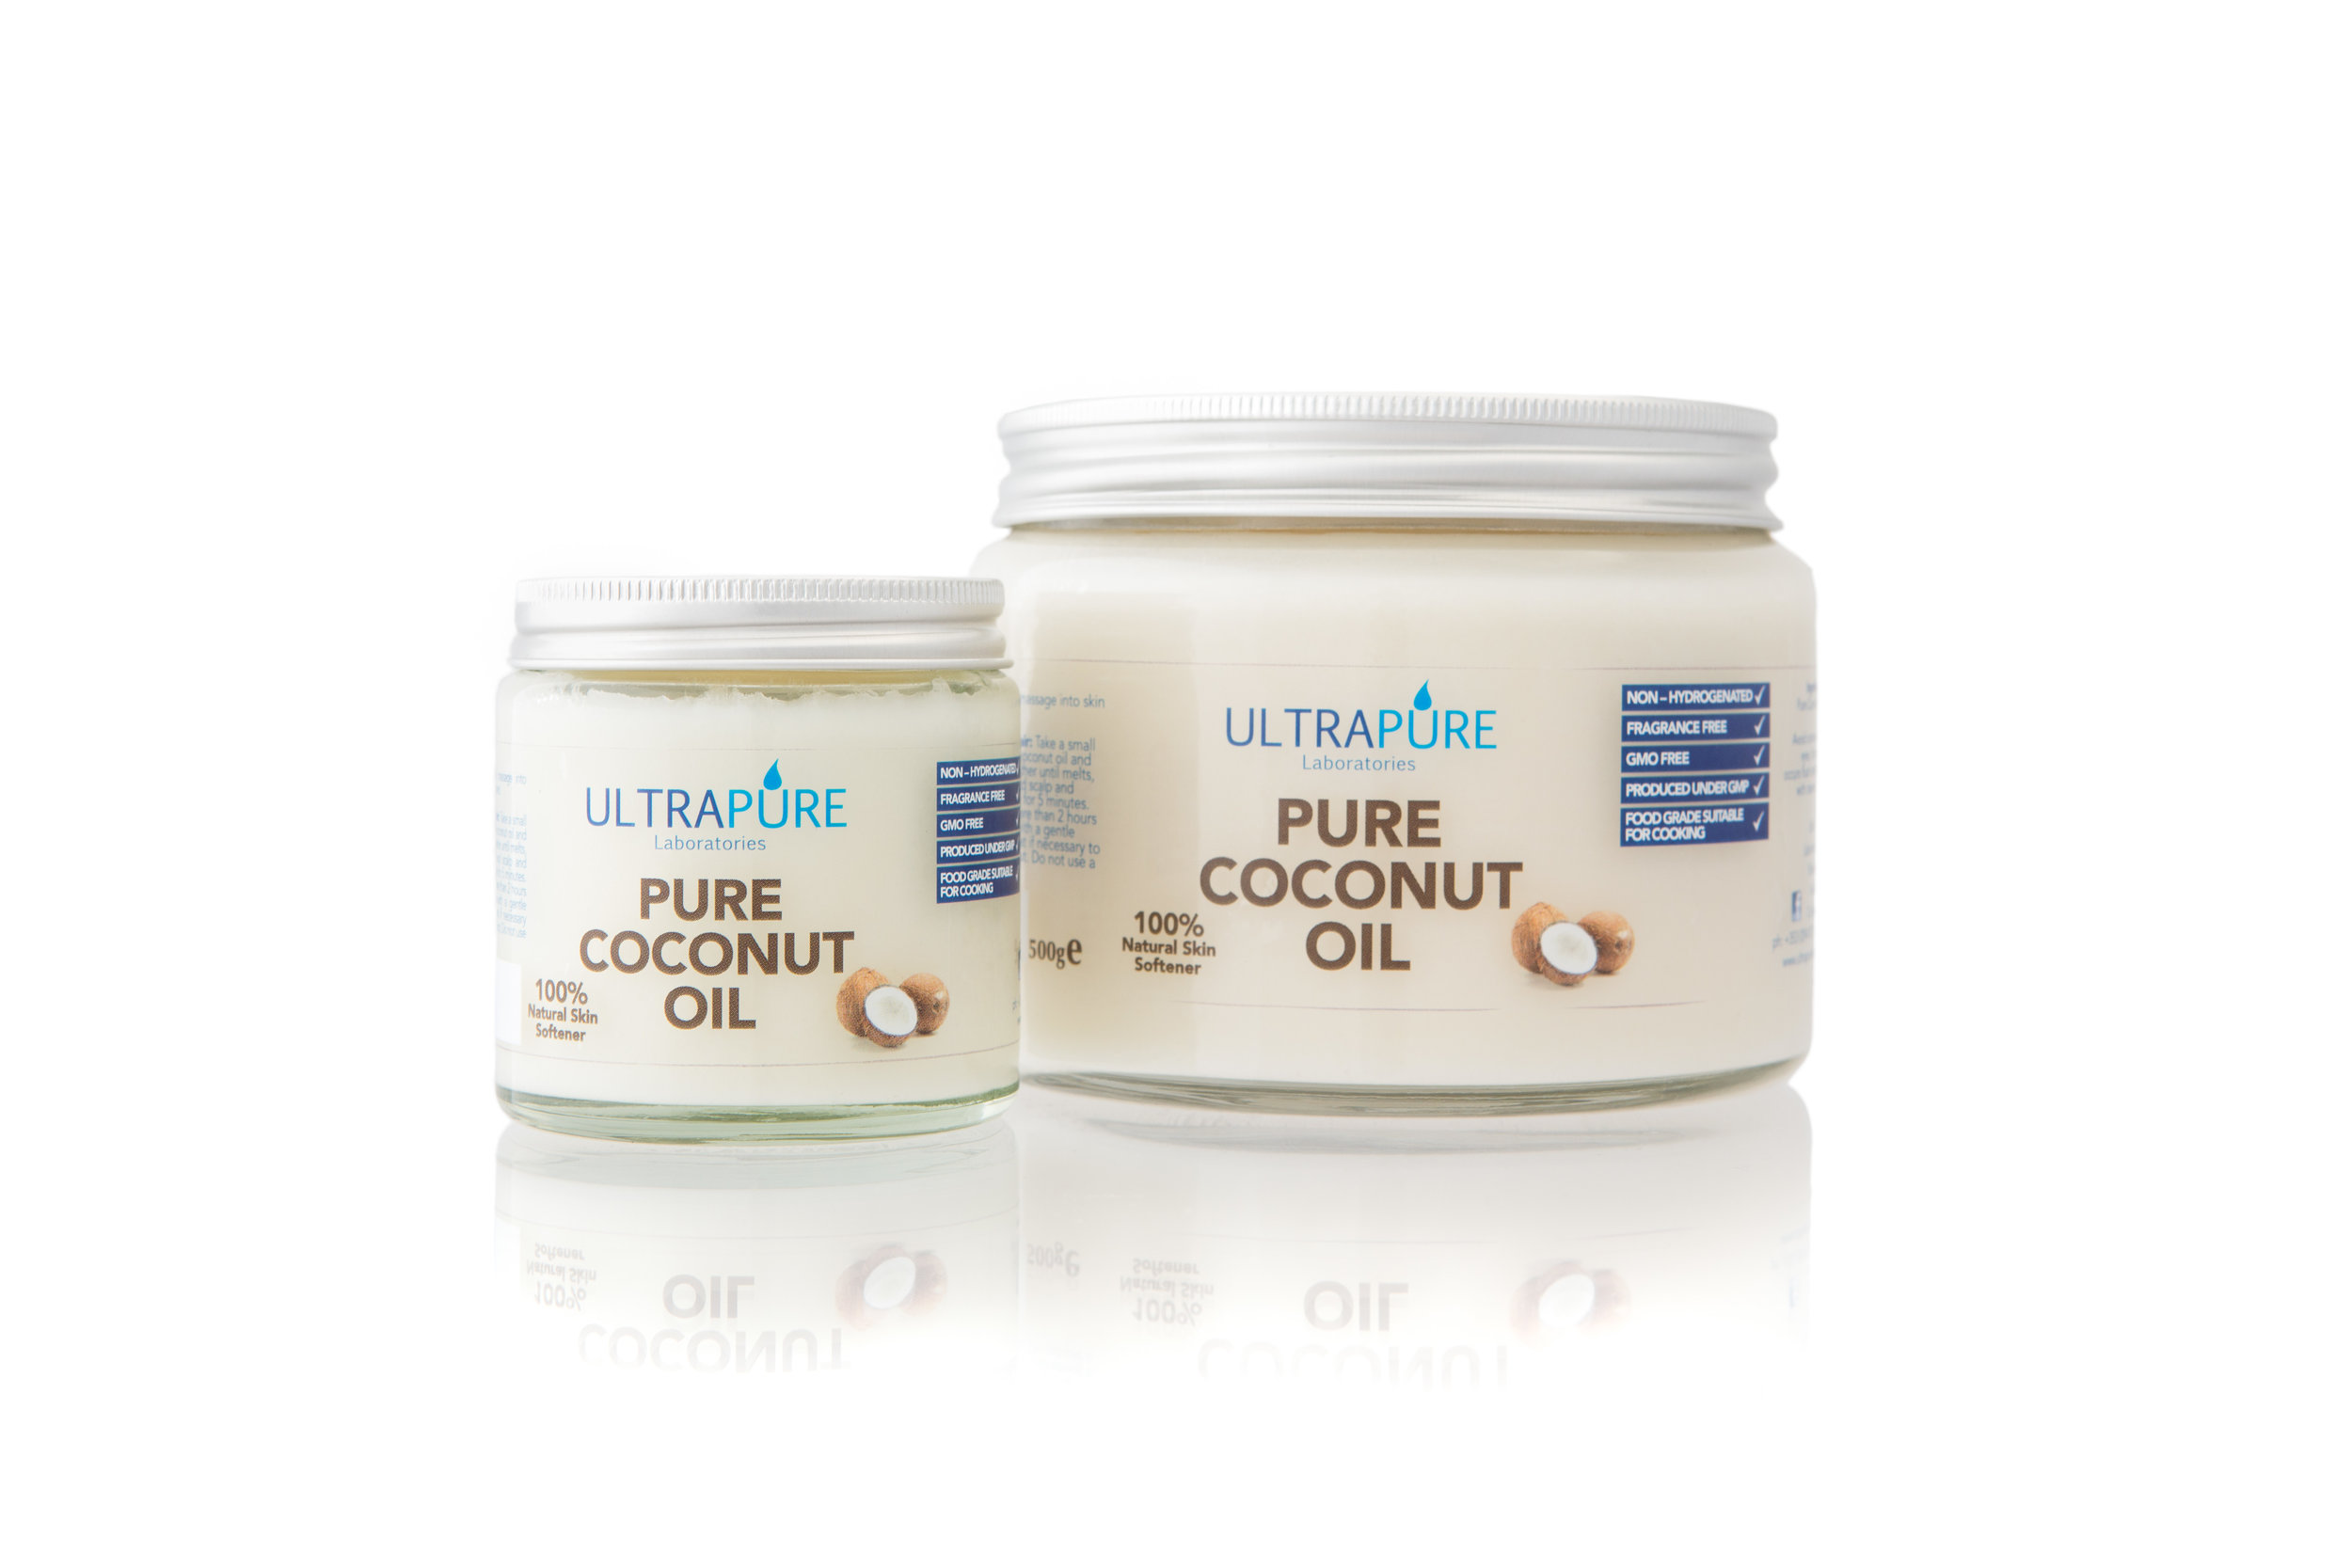 ULTRAPURE Laboratories Coconut Oil is an edible oil extracted from the kernel of mature coconuts.